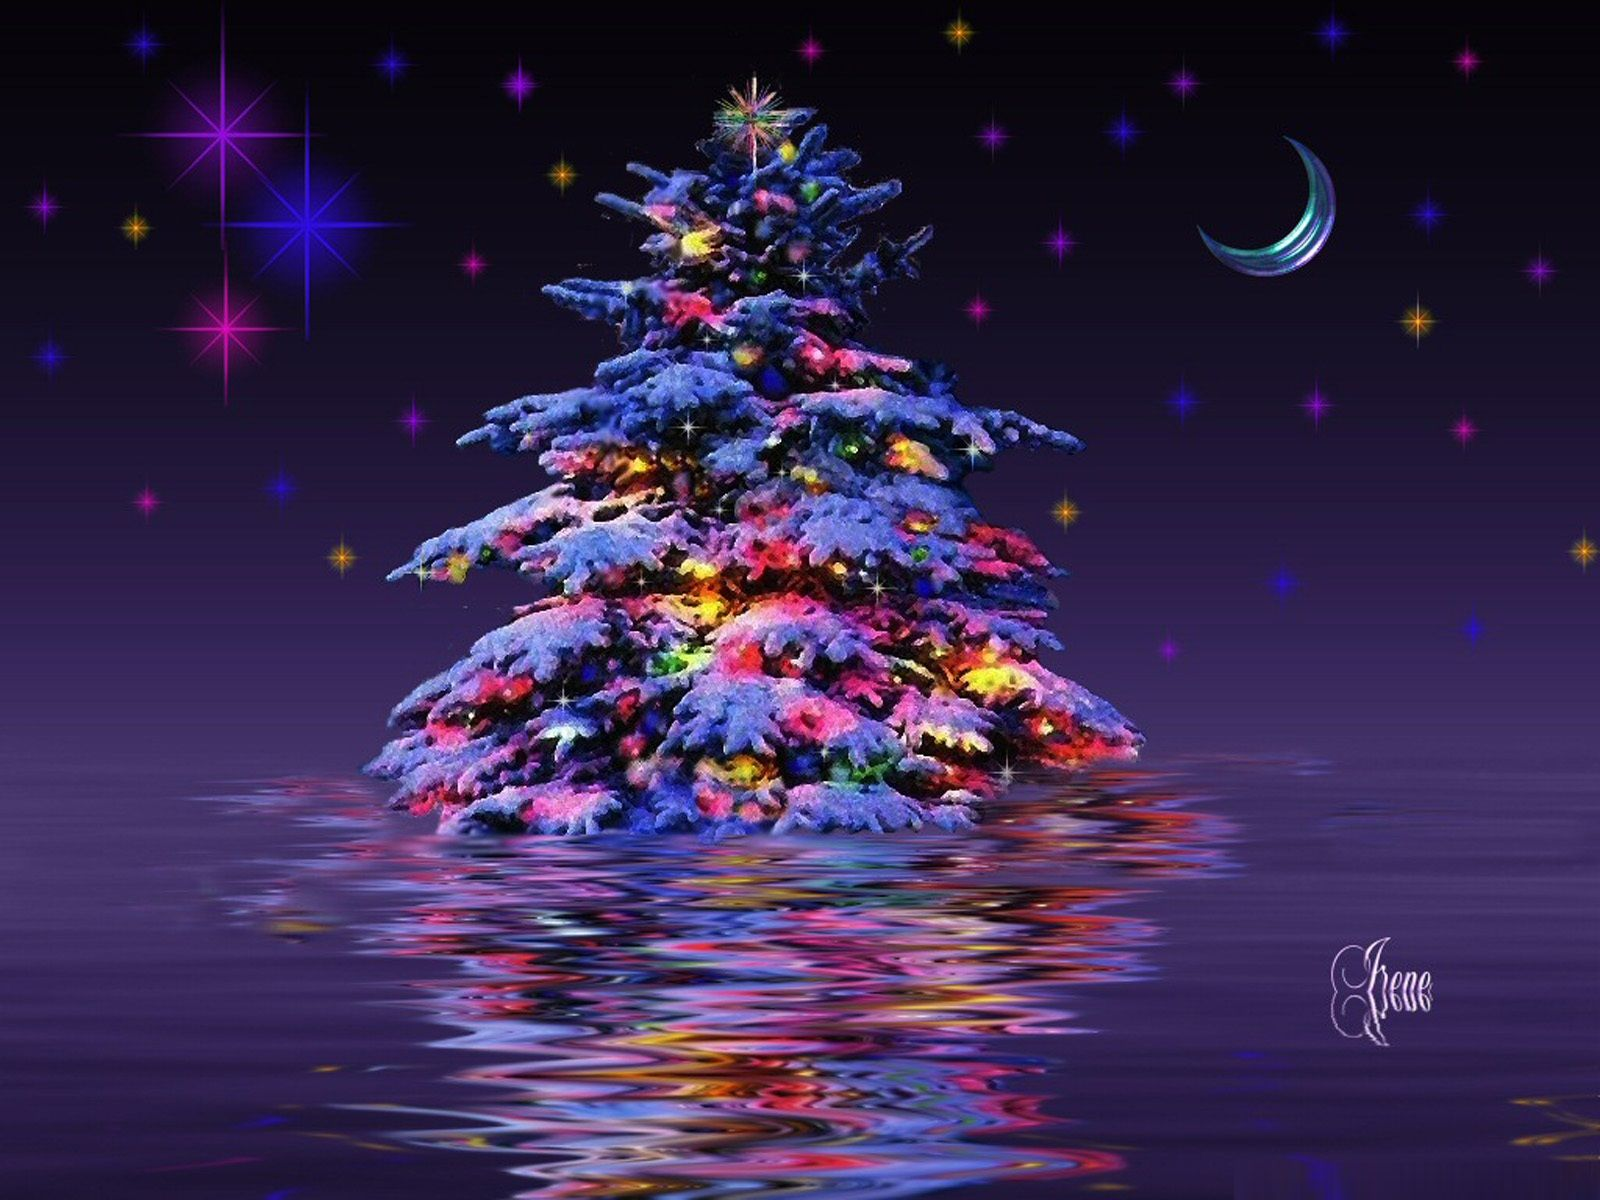 Free Wallpaper Christmas Tree Part - 23: Free 3 D Christmas Background | Tree Wallpapers Your Selected Image As Your  Desktop Wallpaper You